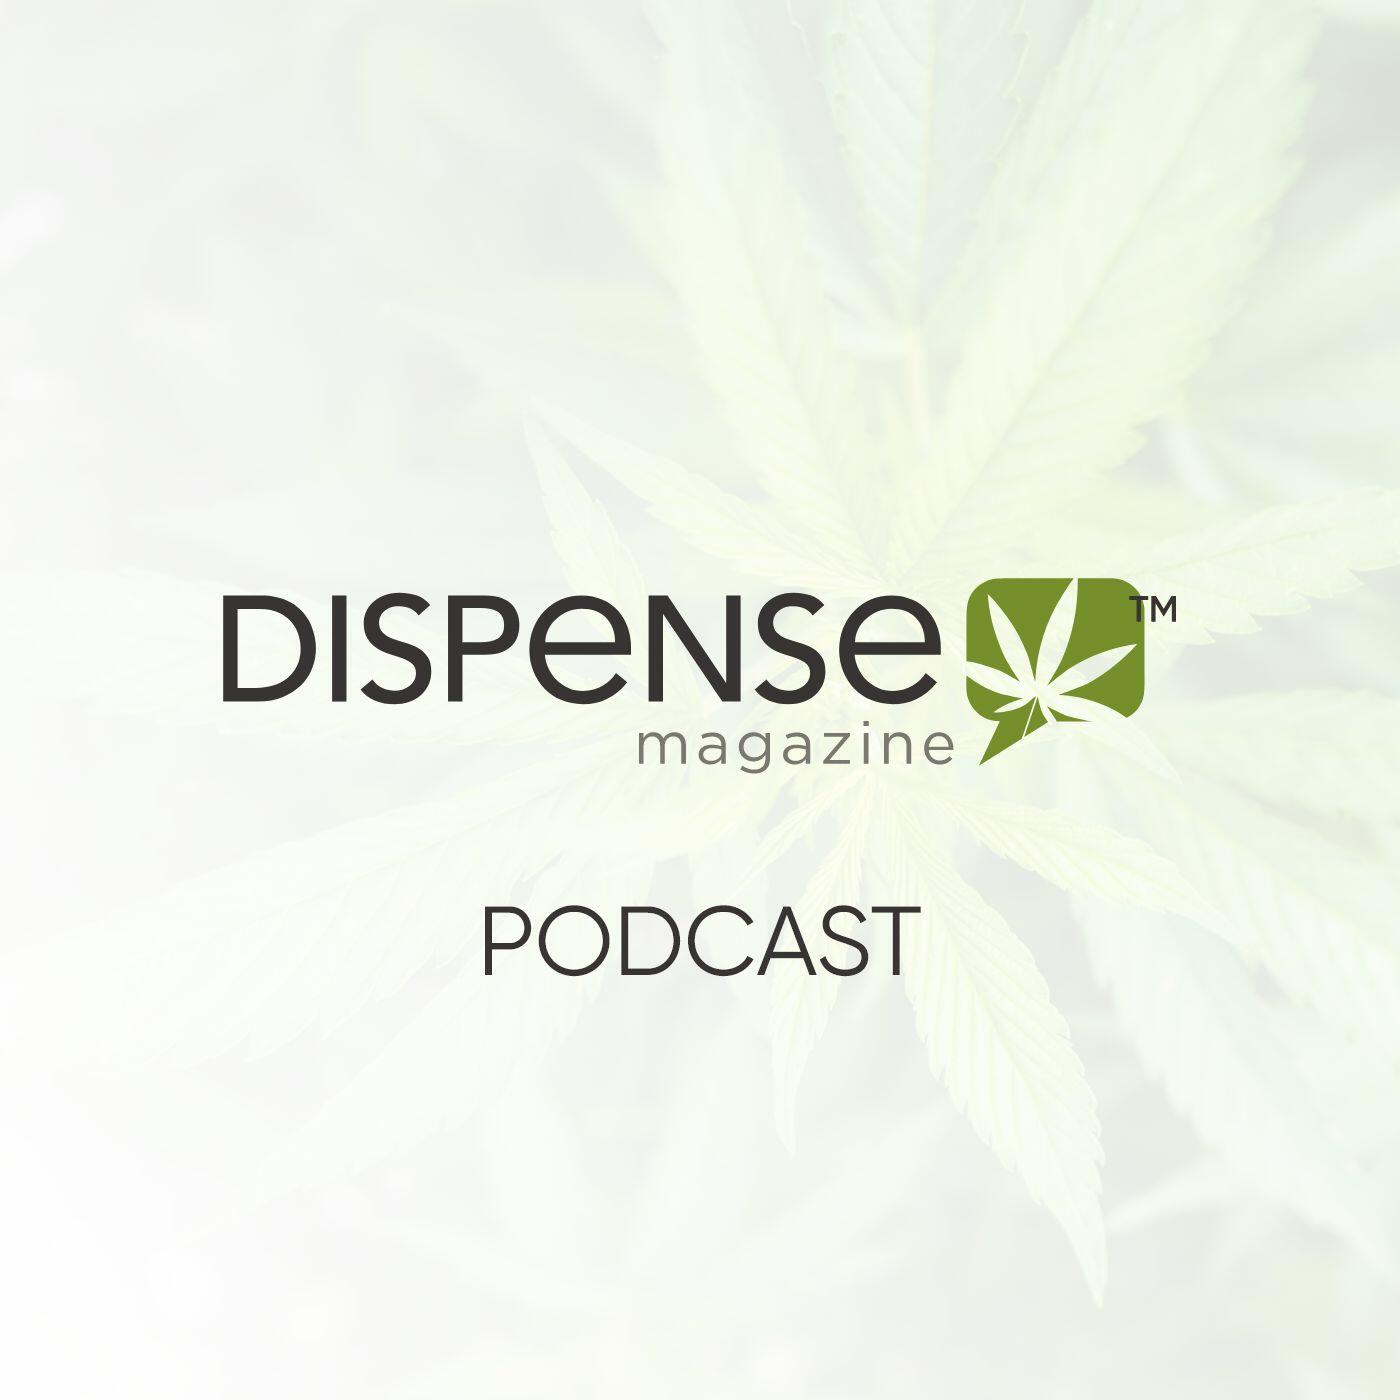 Dispense Magazine podcast